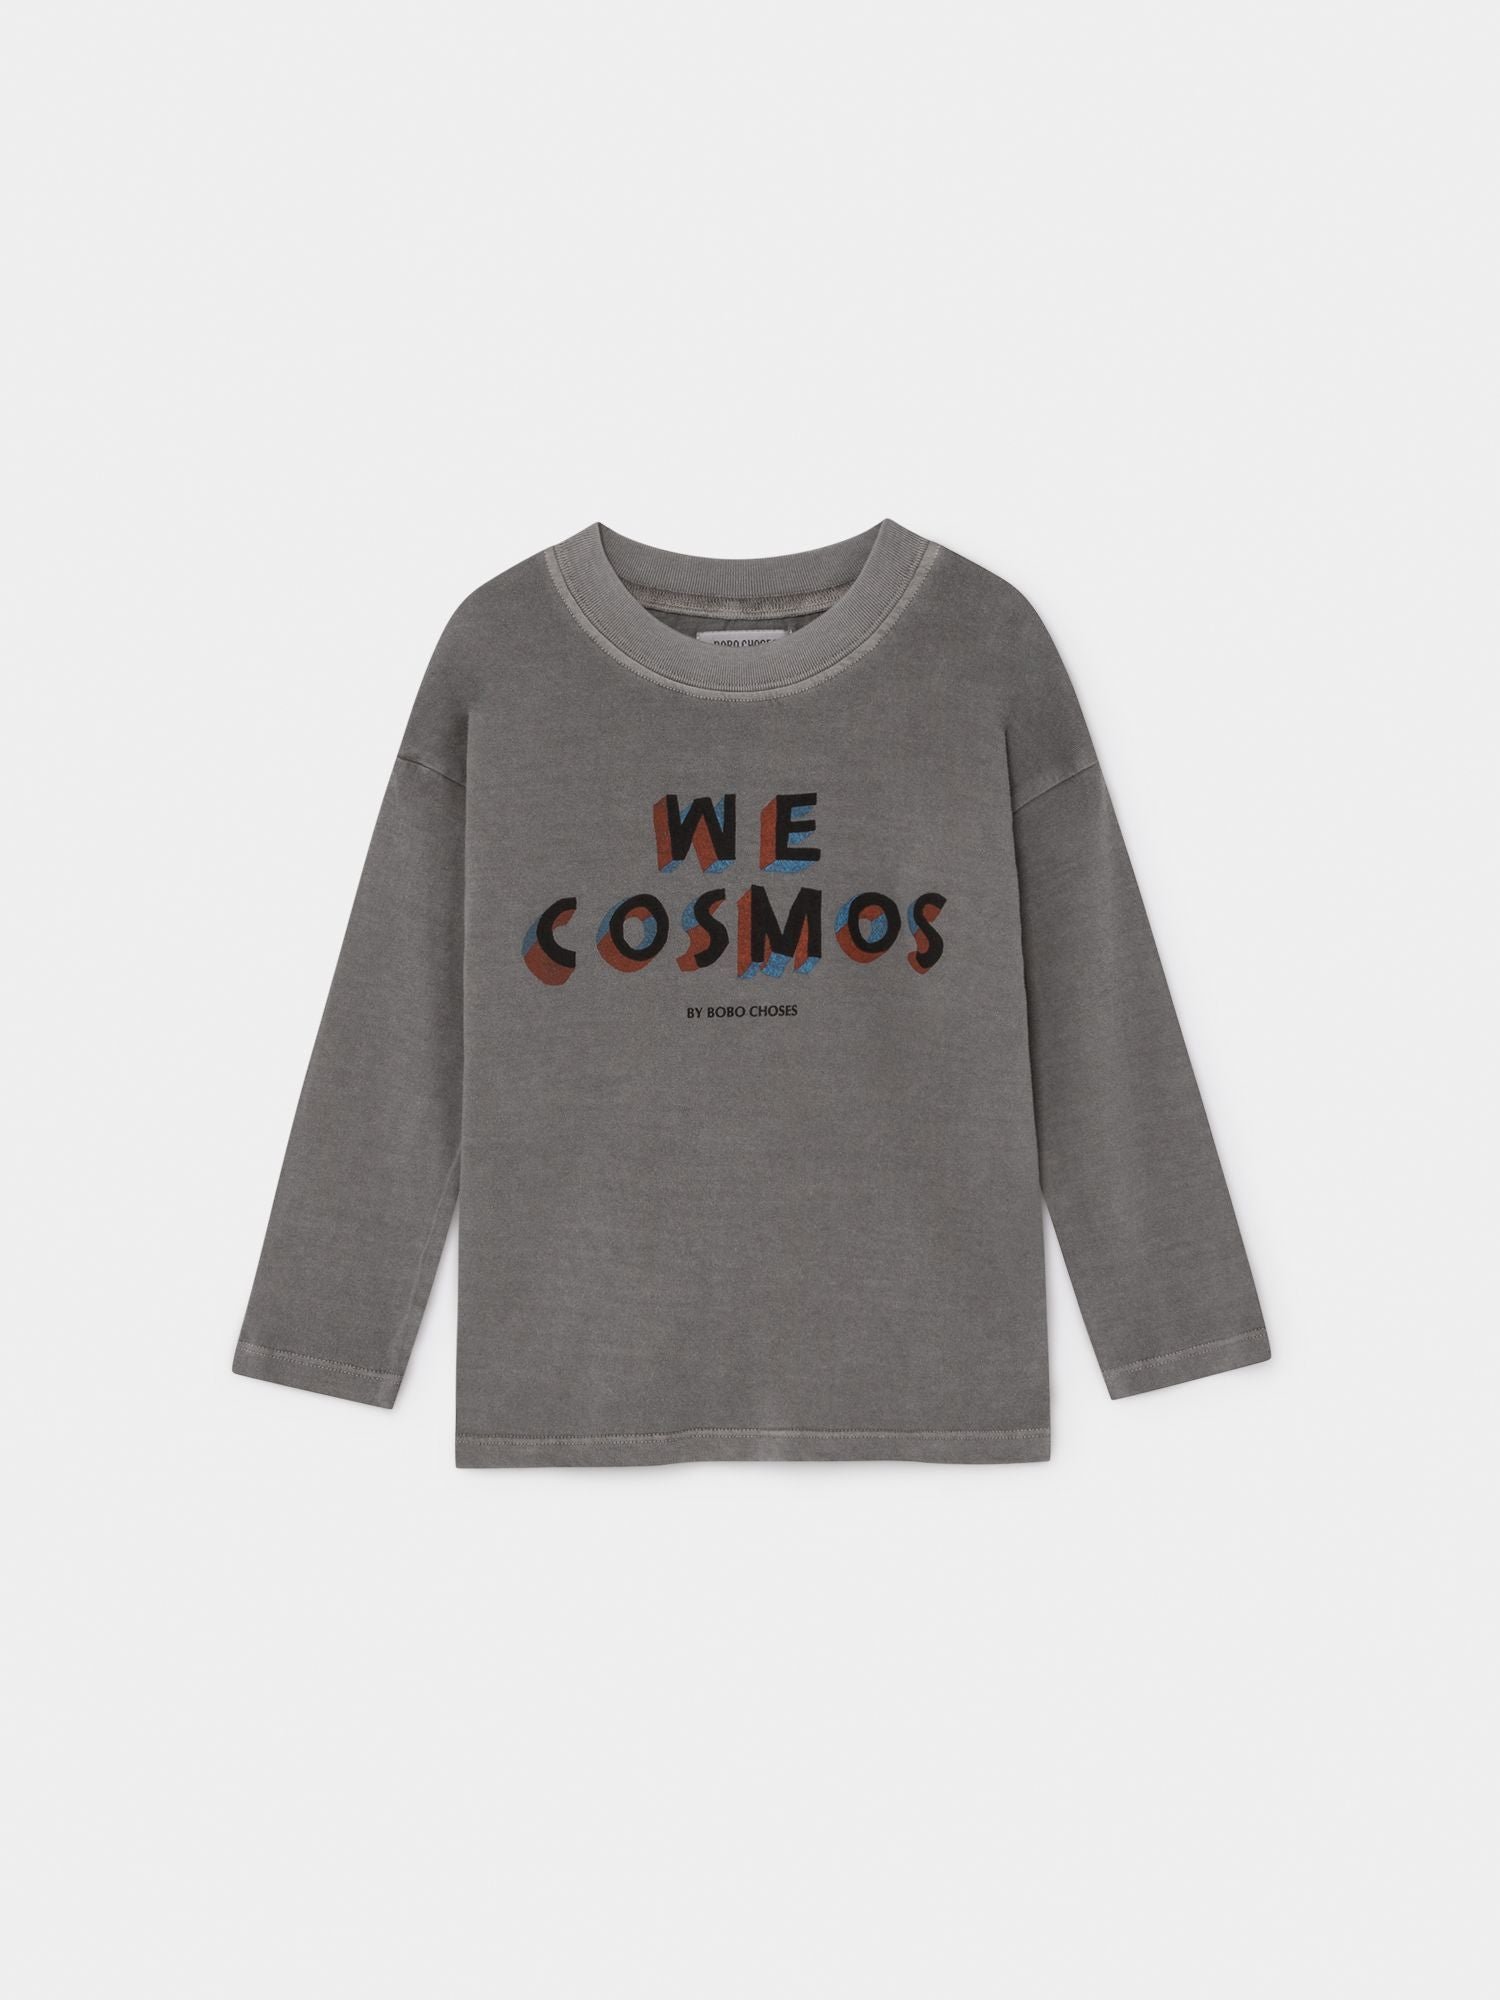 We Cosmos Long Sleeve T-shirt